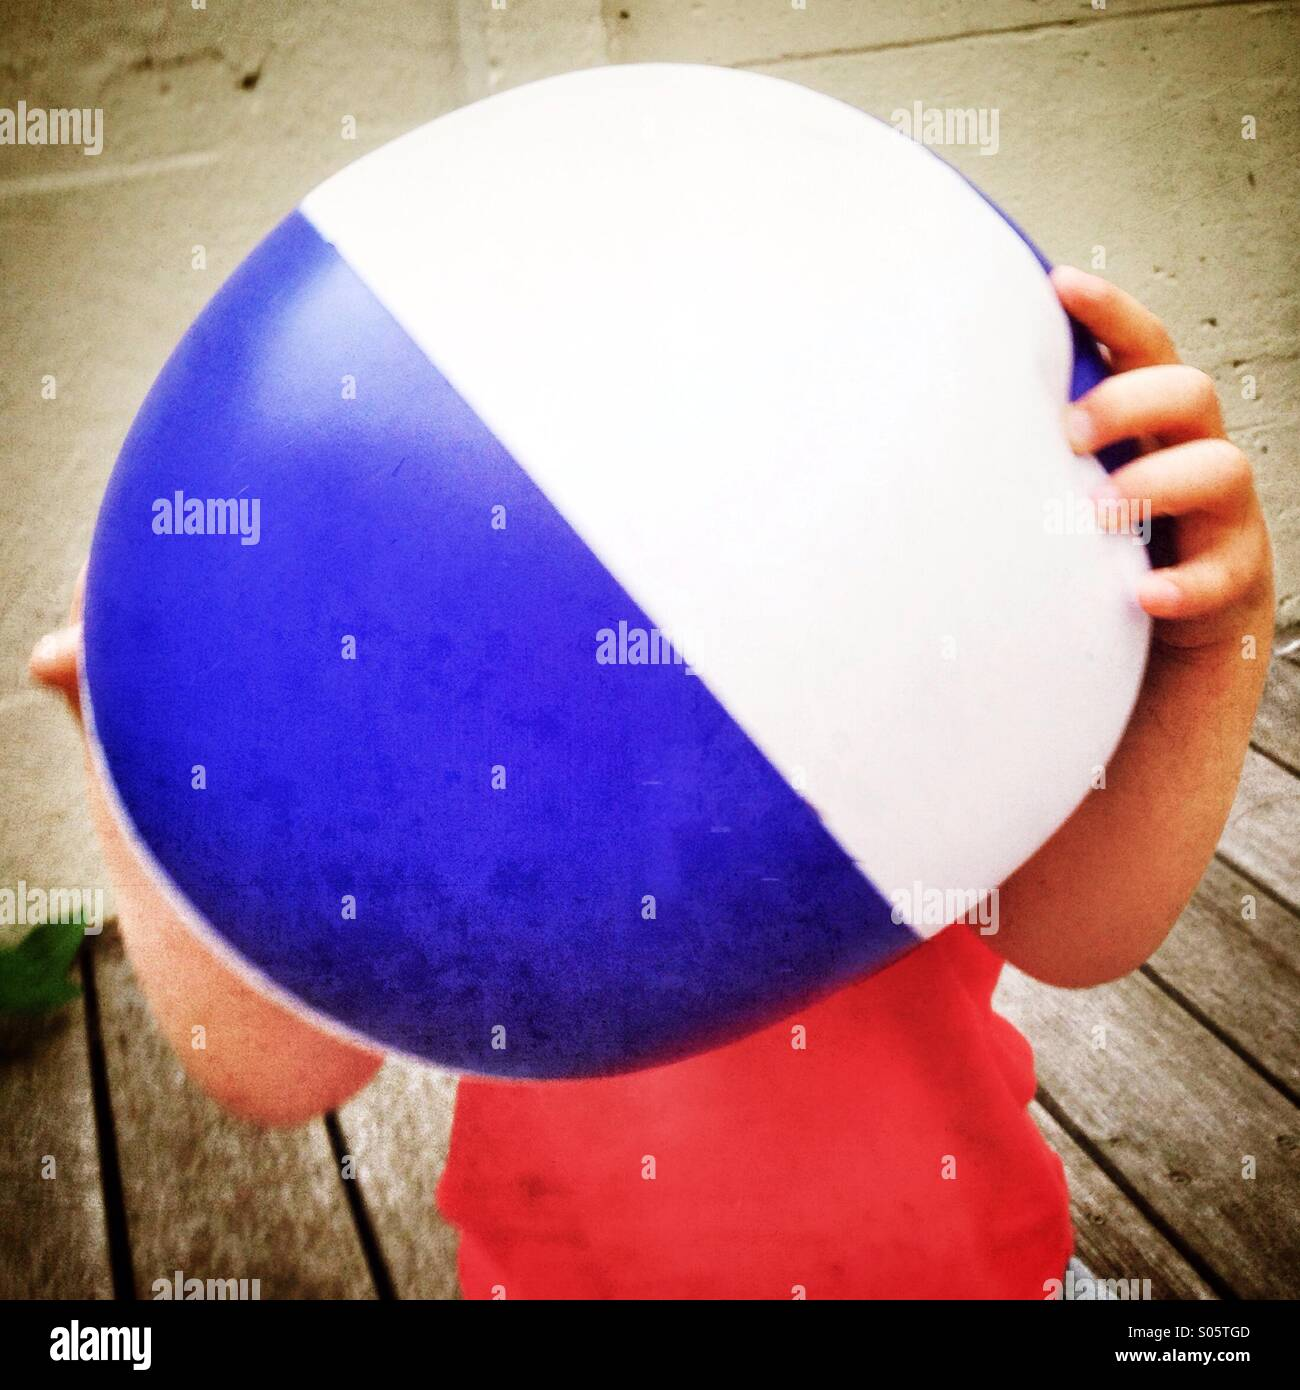 Kid holding beach ball Photo Stock